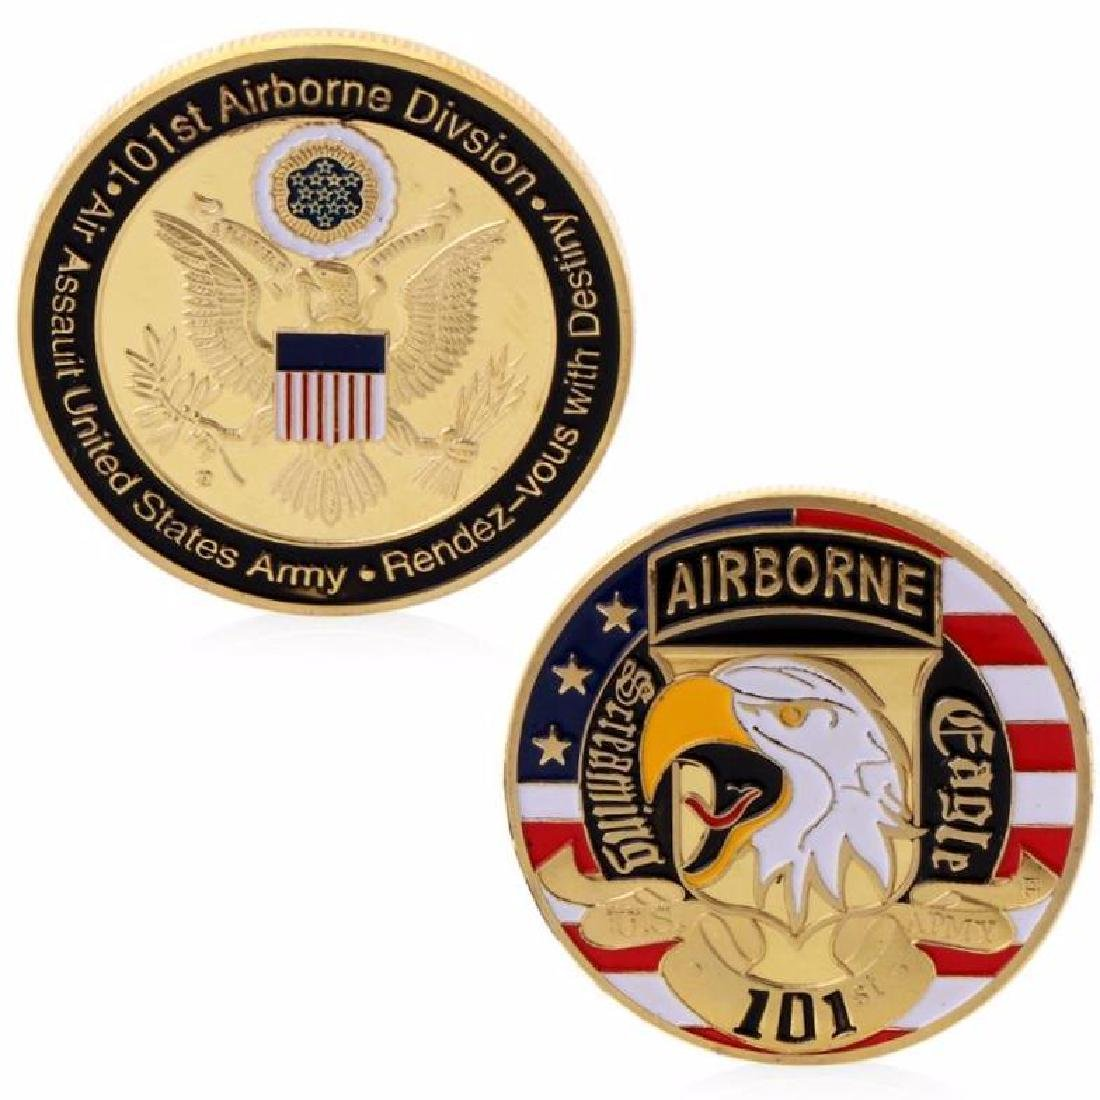 USA 101 Airbone Division Colored Gold Clad Coin